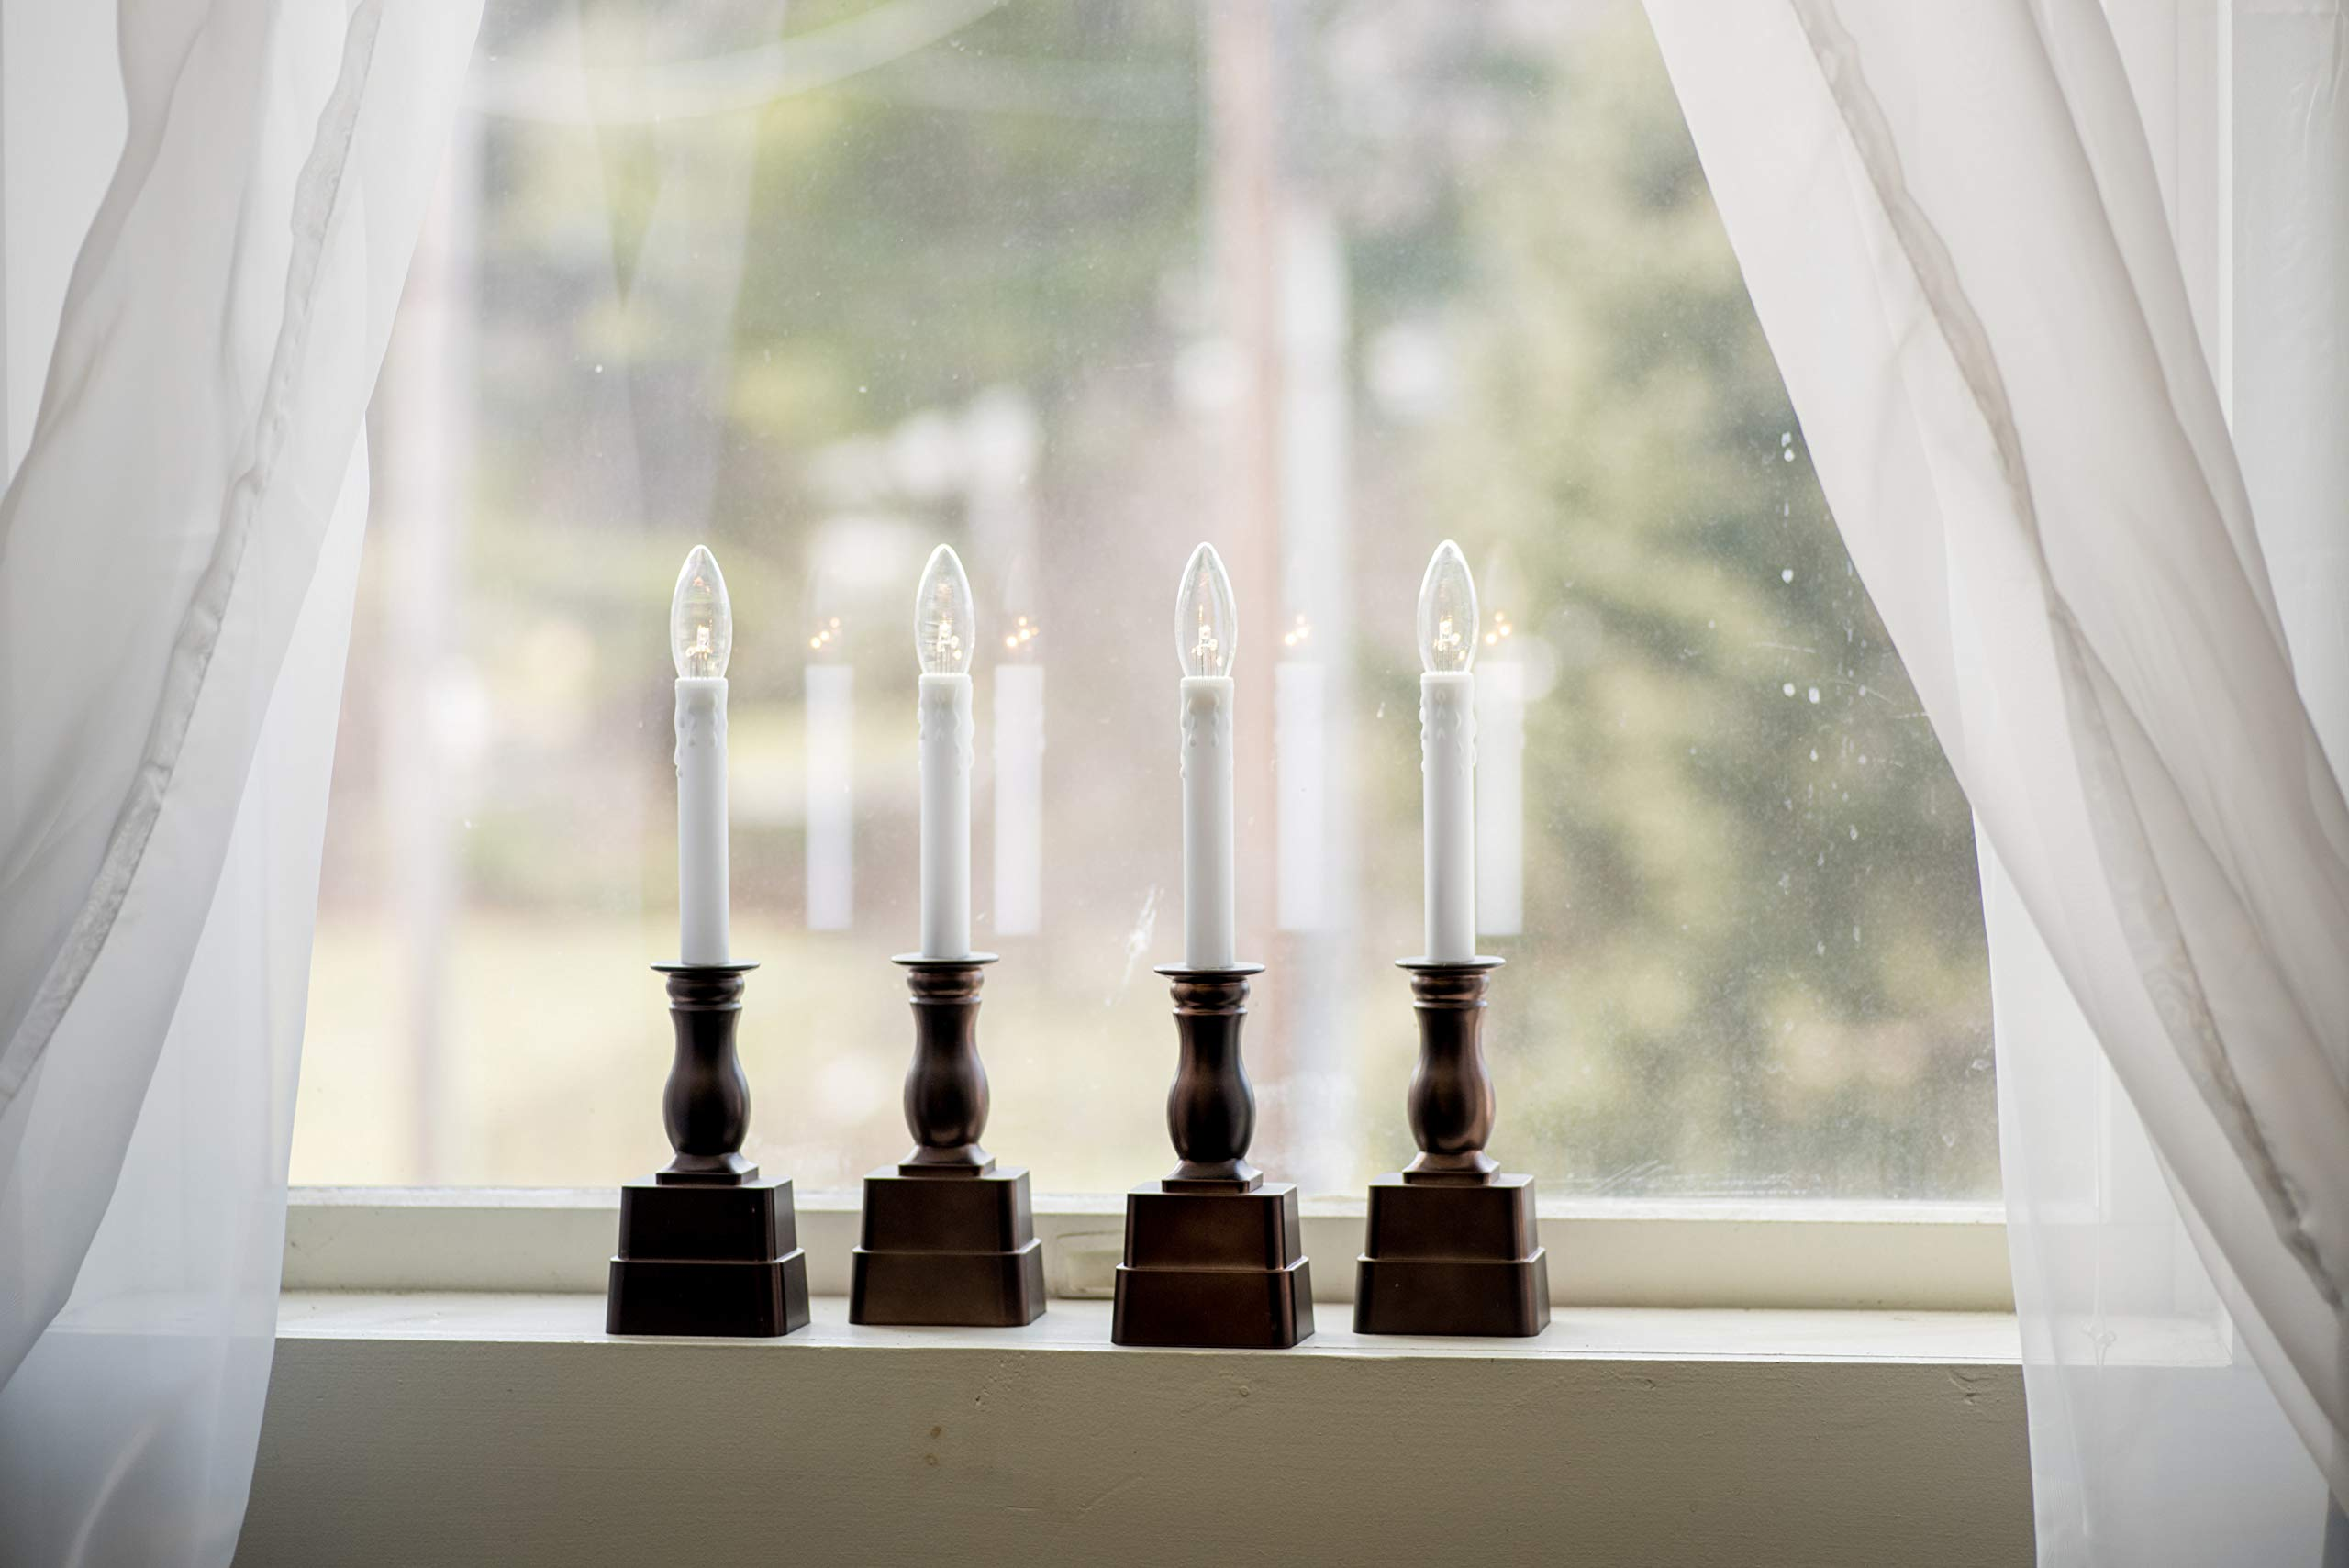 Boston Warehouse Allure Adjustable Height Indoor Flameless Window Candles with Timer, Set of 4, Battery Operated, Bronze by Boston Warehouse (Image #3)